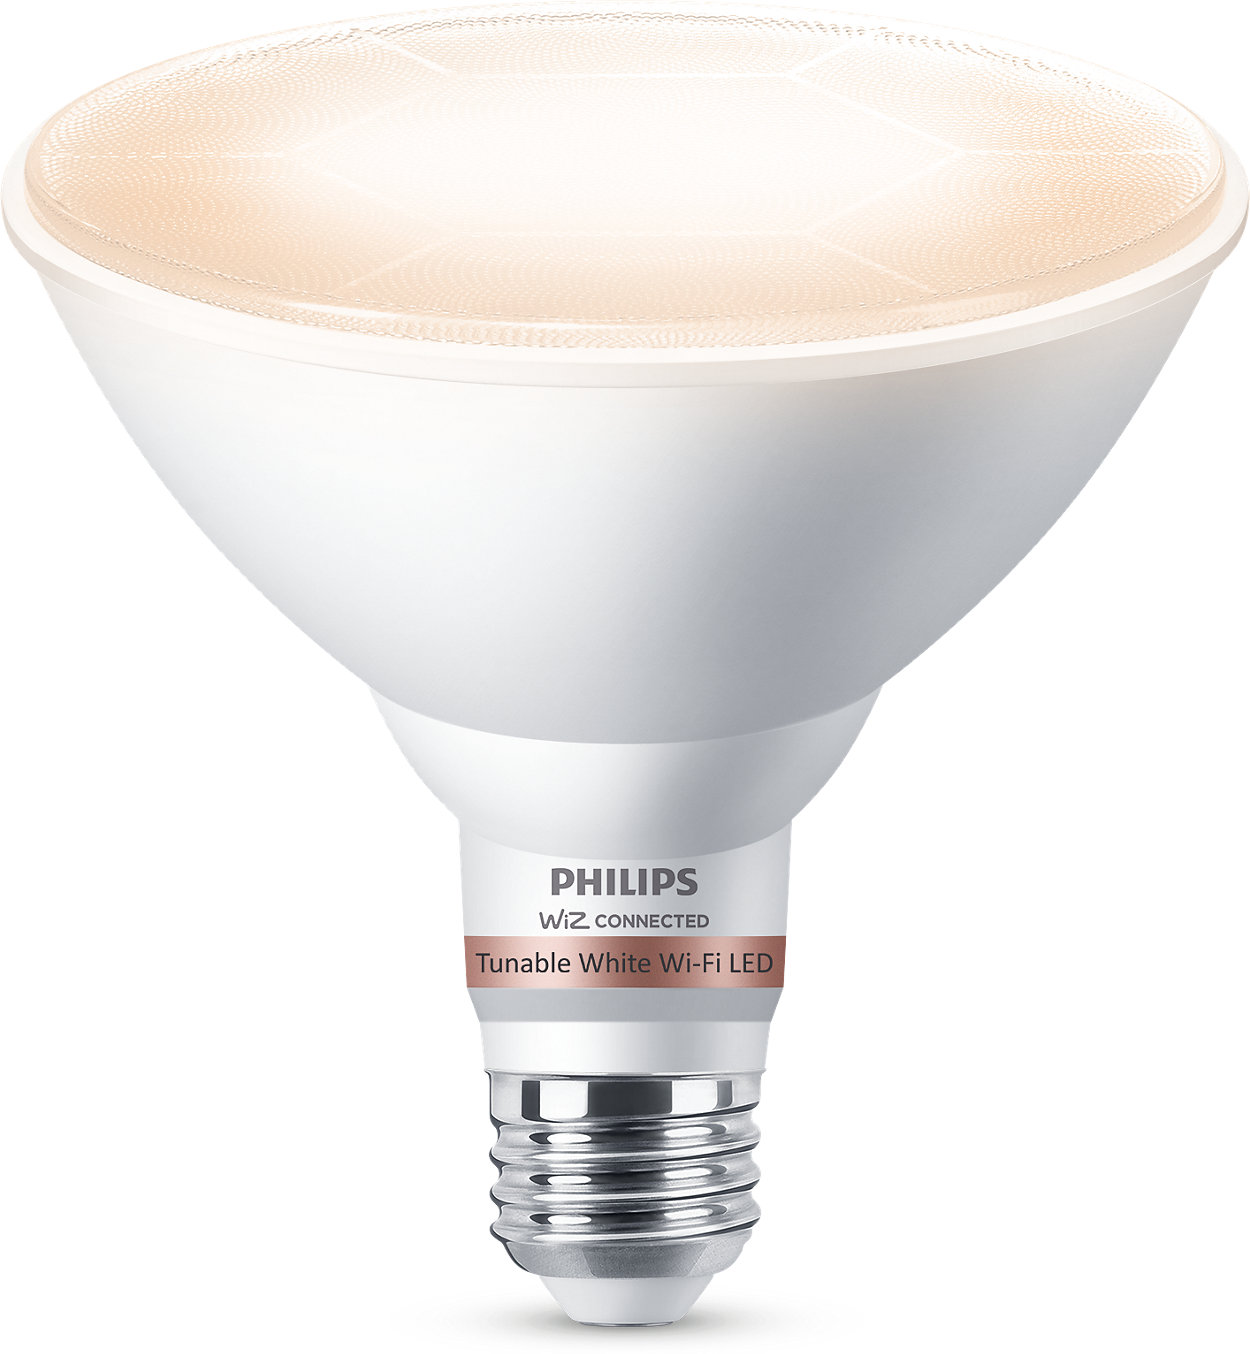 Smart lighting for your daily living